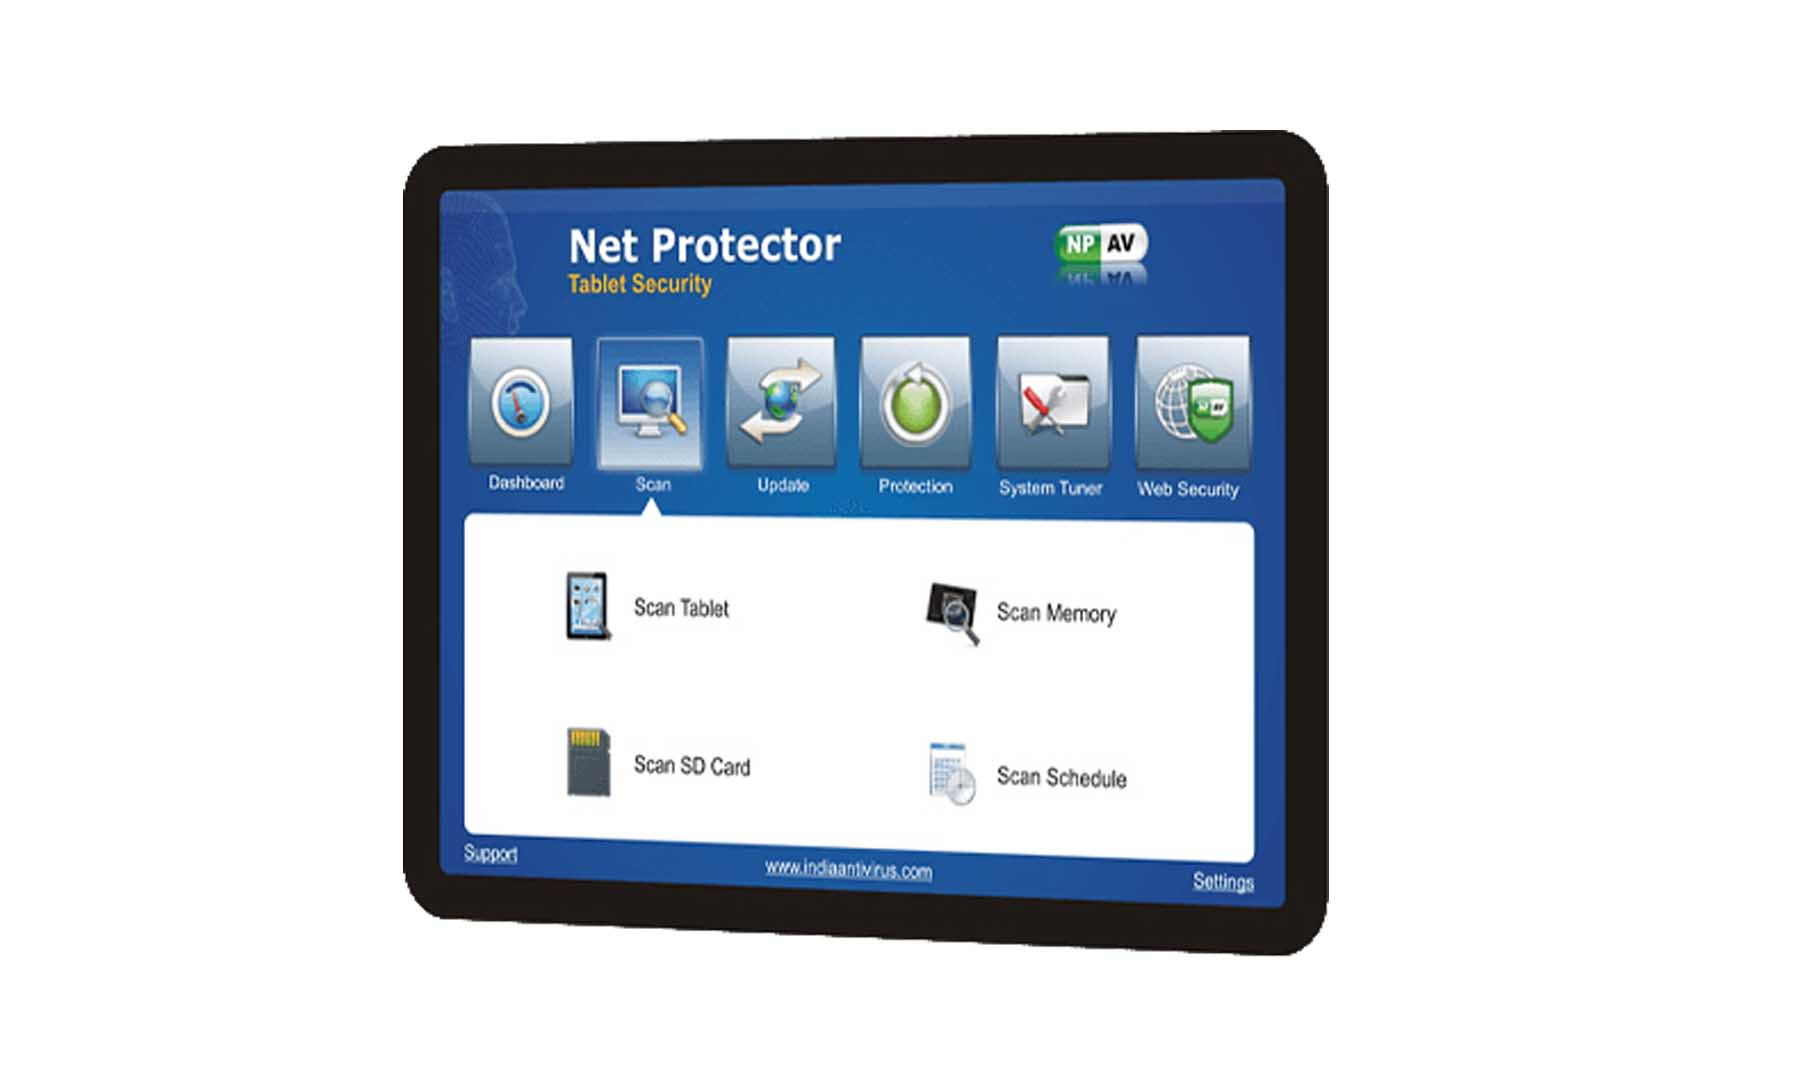 Net Protector Tablet Security